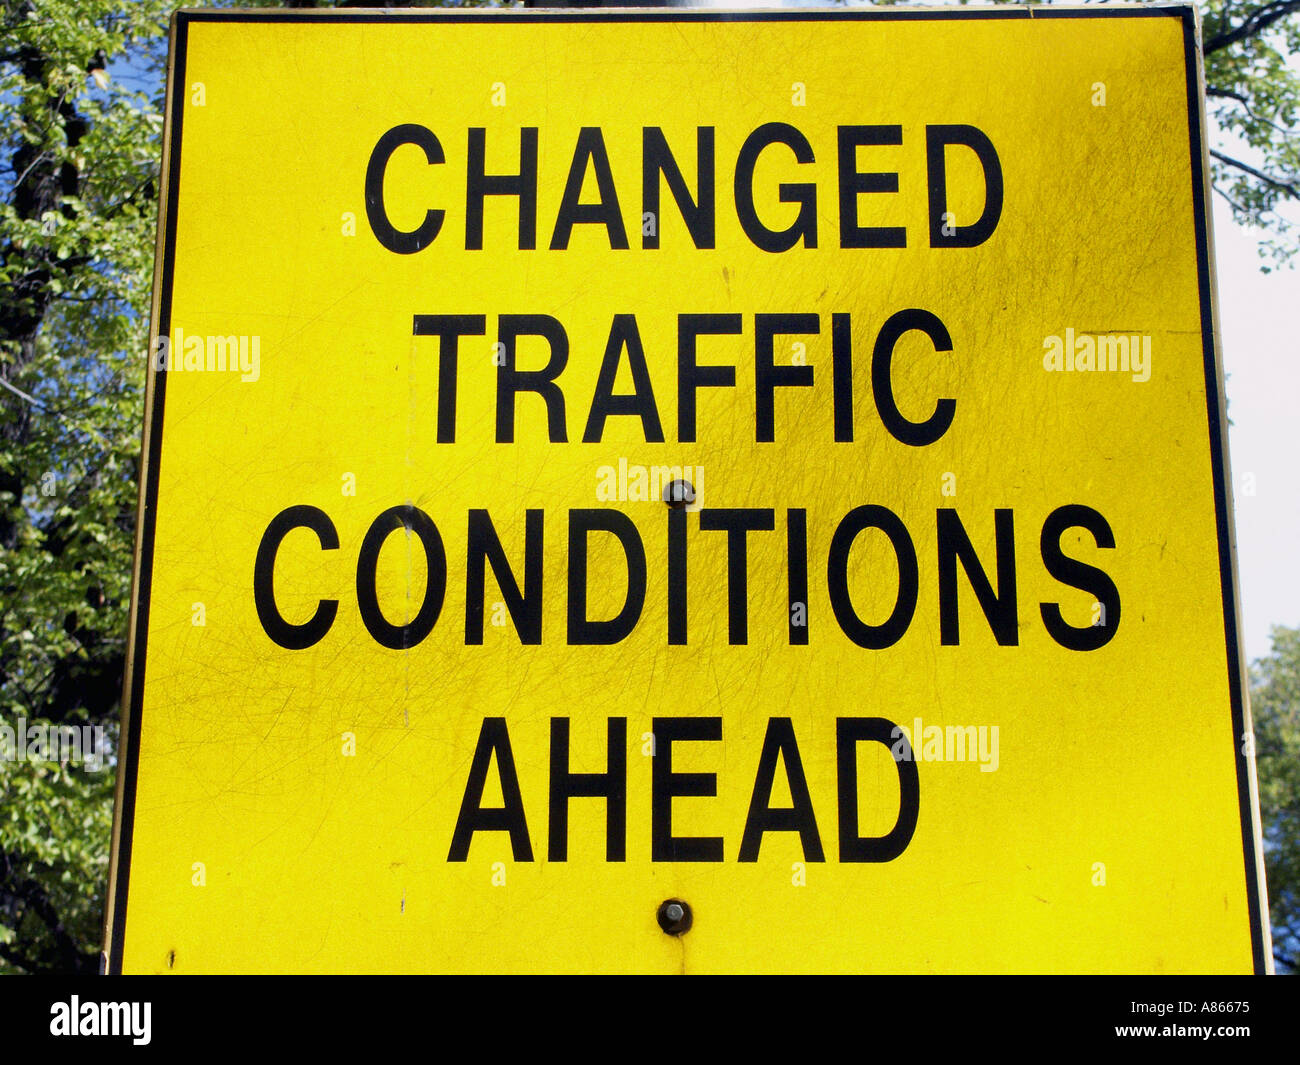 Changed Traffic Conditions Ahead road sign - Stock Image